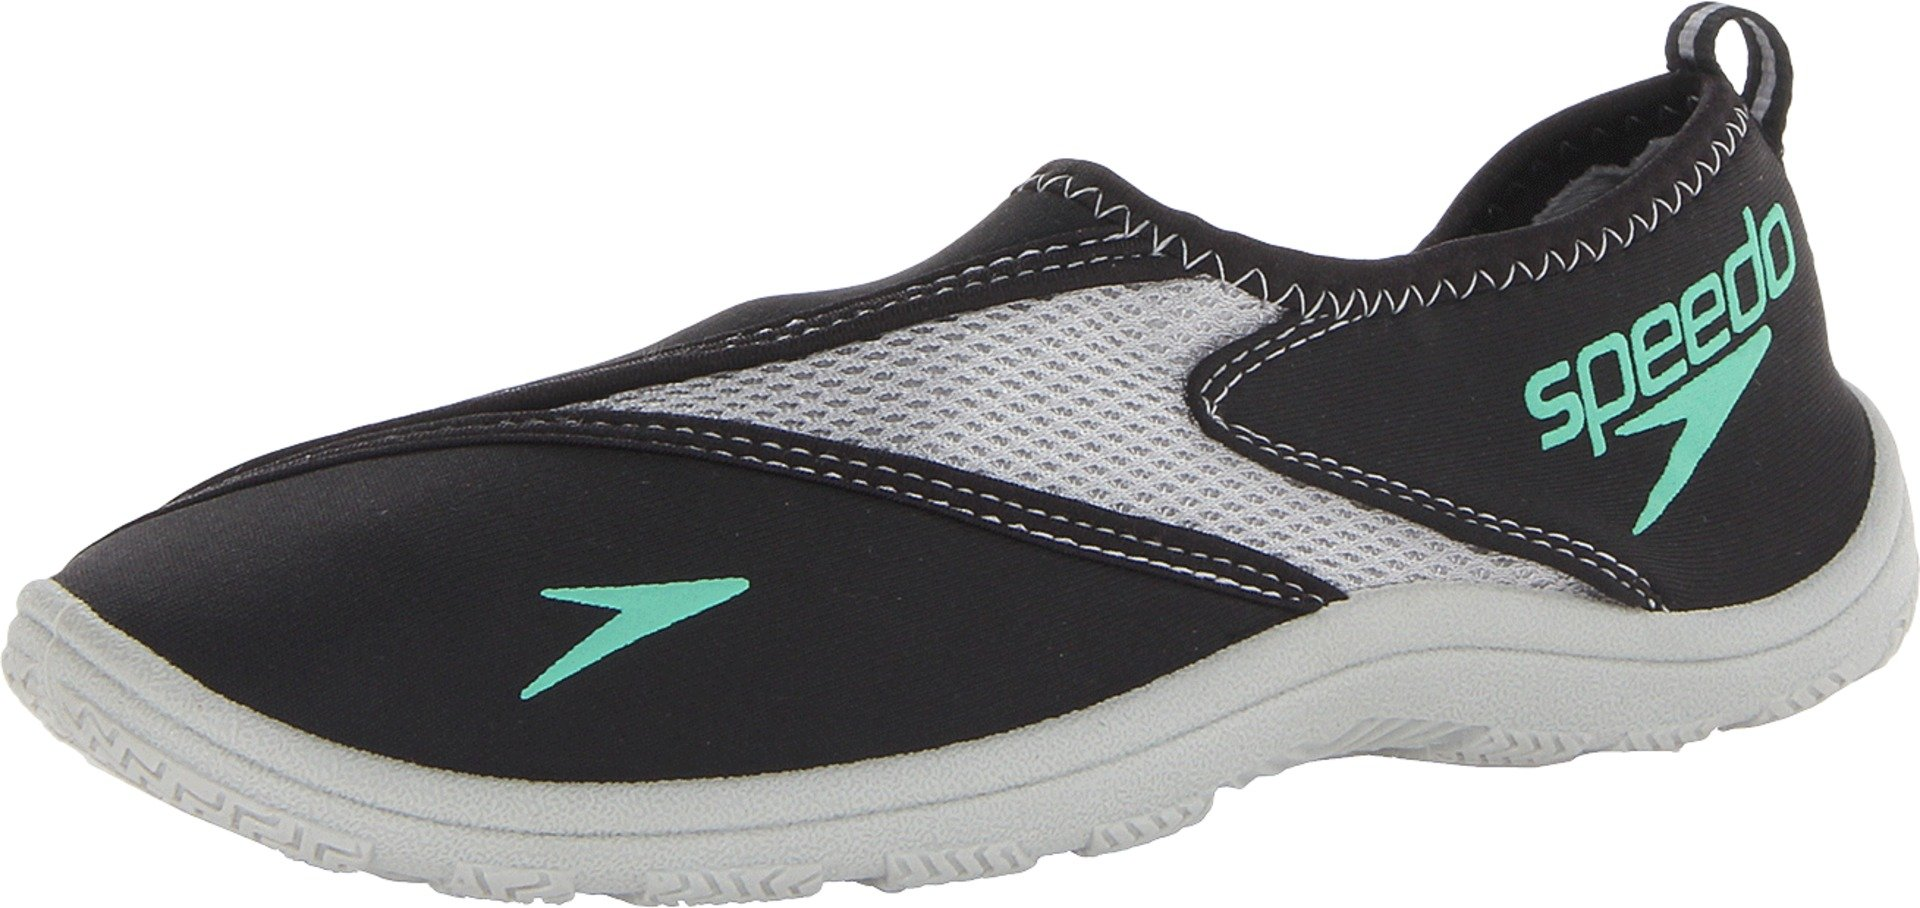 Speedo Women's Surfwalker Pro 2.0 Amphibious Pull-On Water Shoe